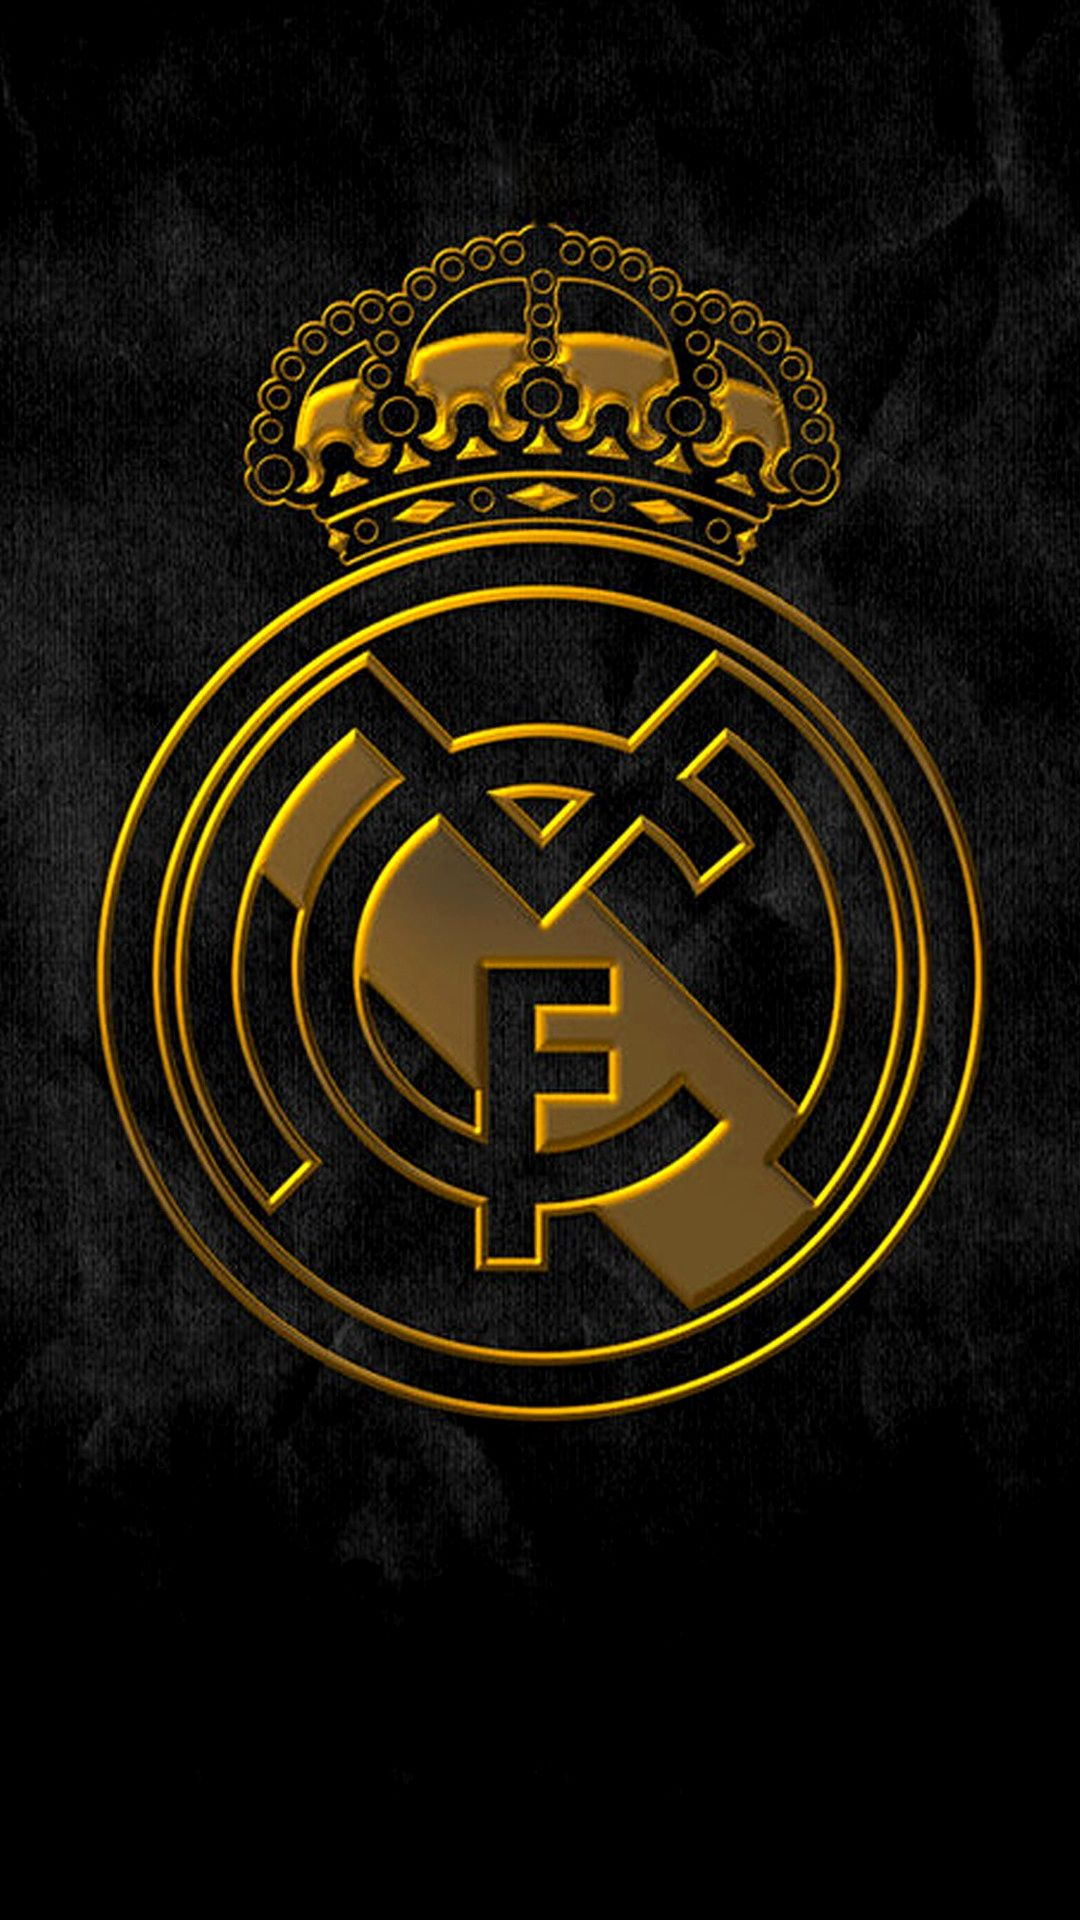 Real Madrid Wallpaper 4k Mobile Ideas Check More At Https